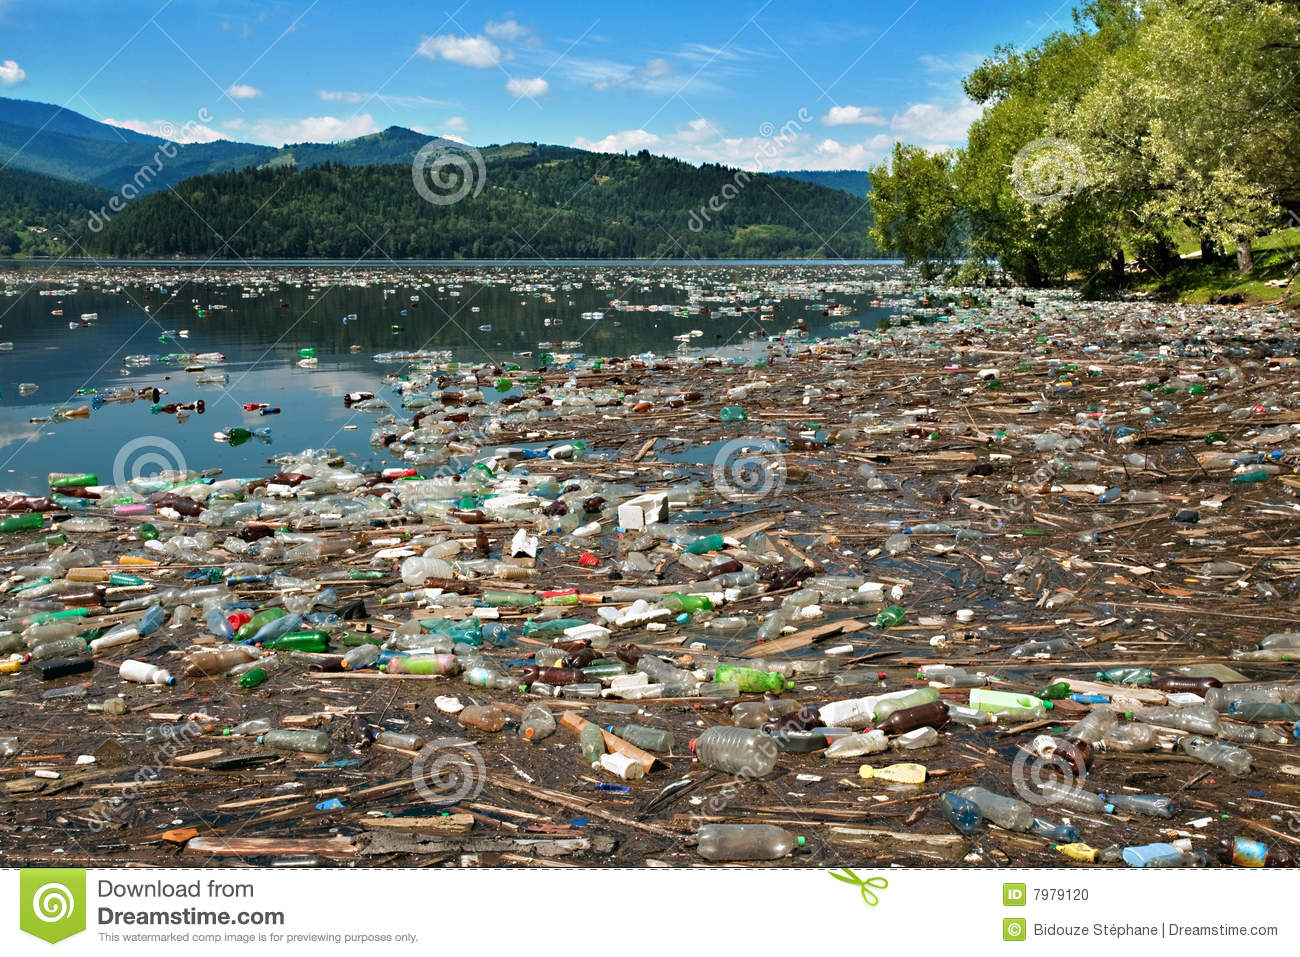 Tons of plastic bottles and other waste floating on beautiful lake.